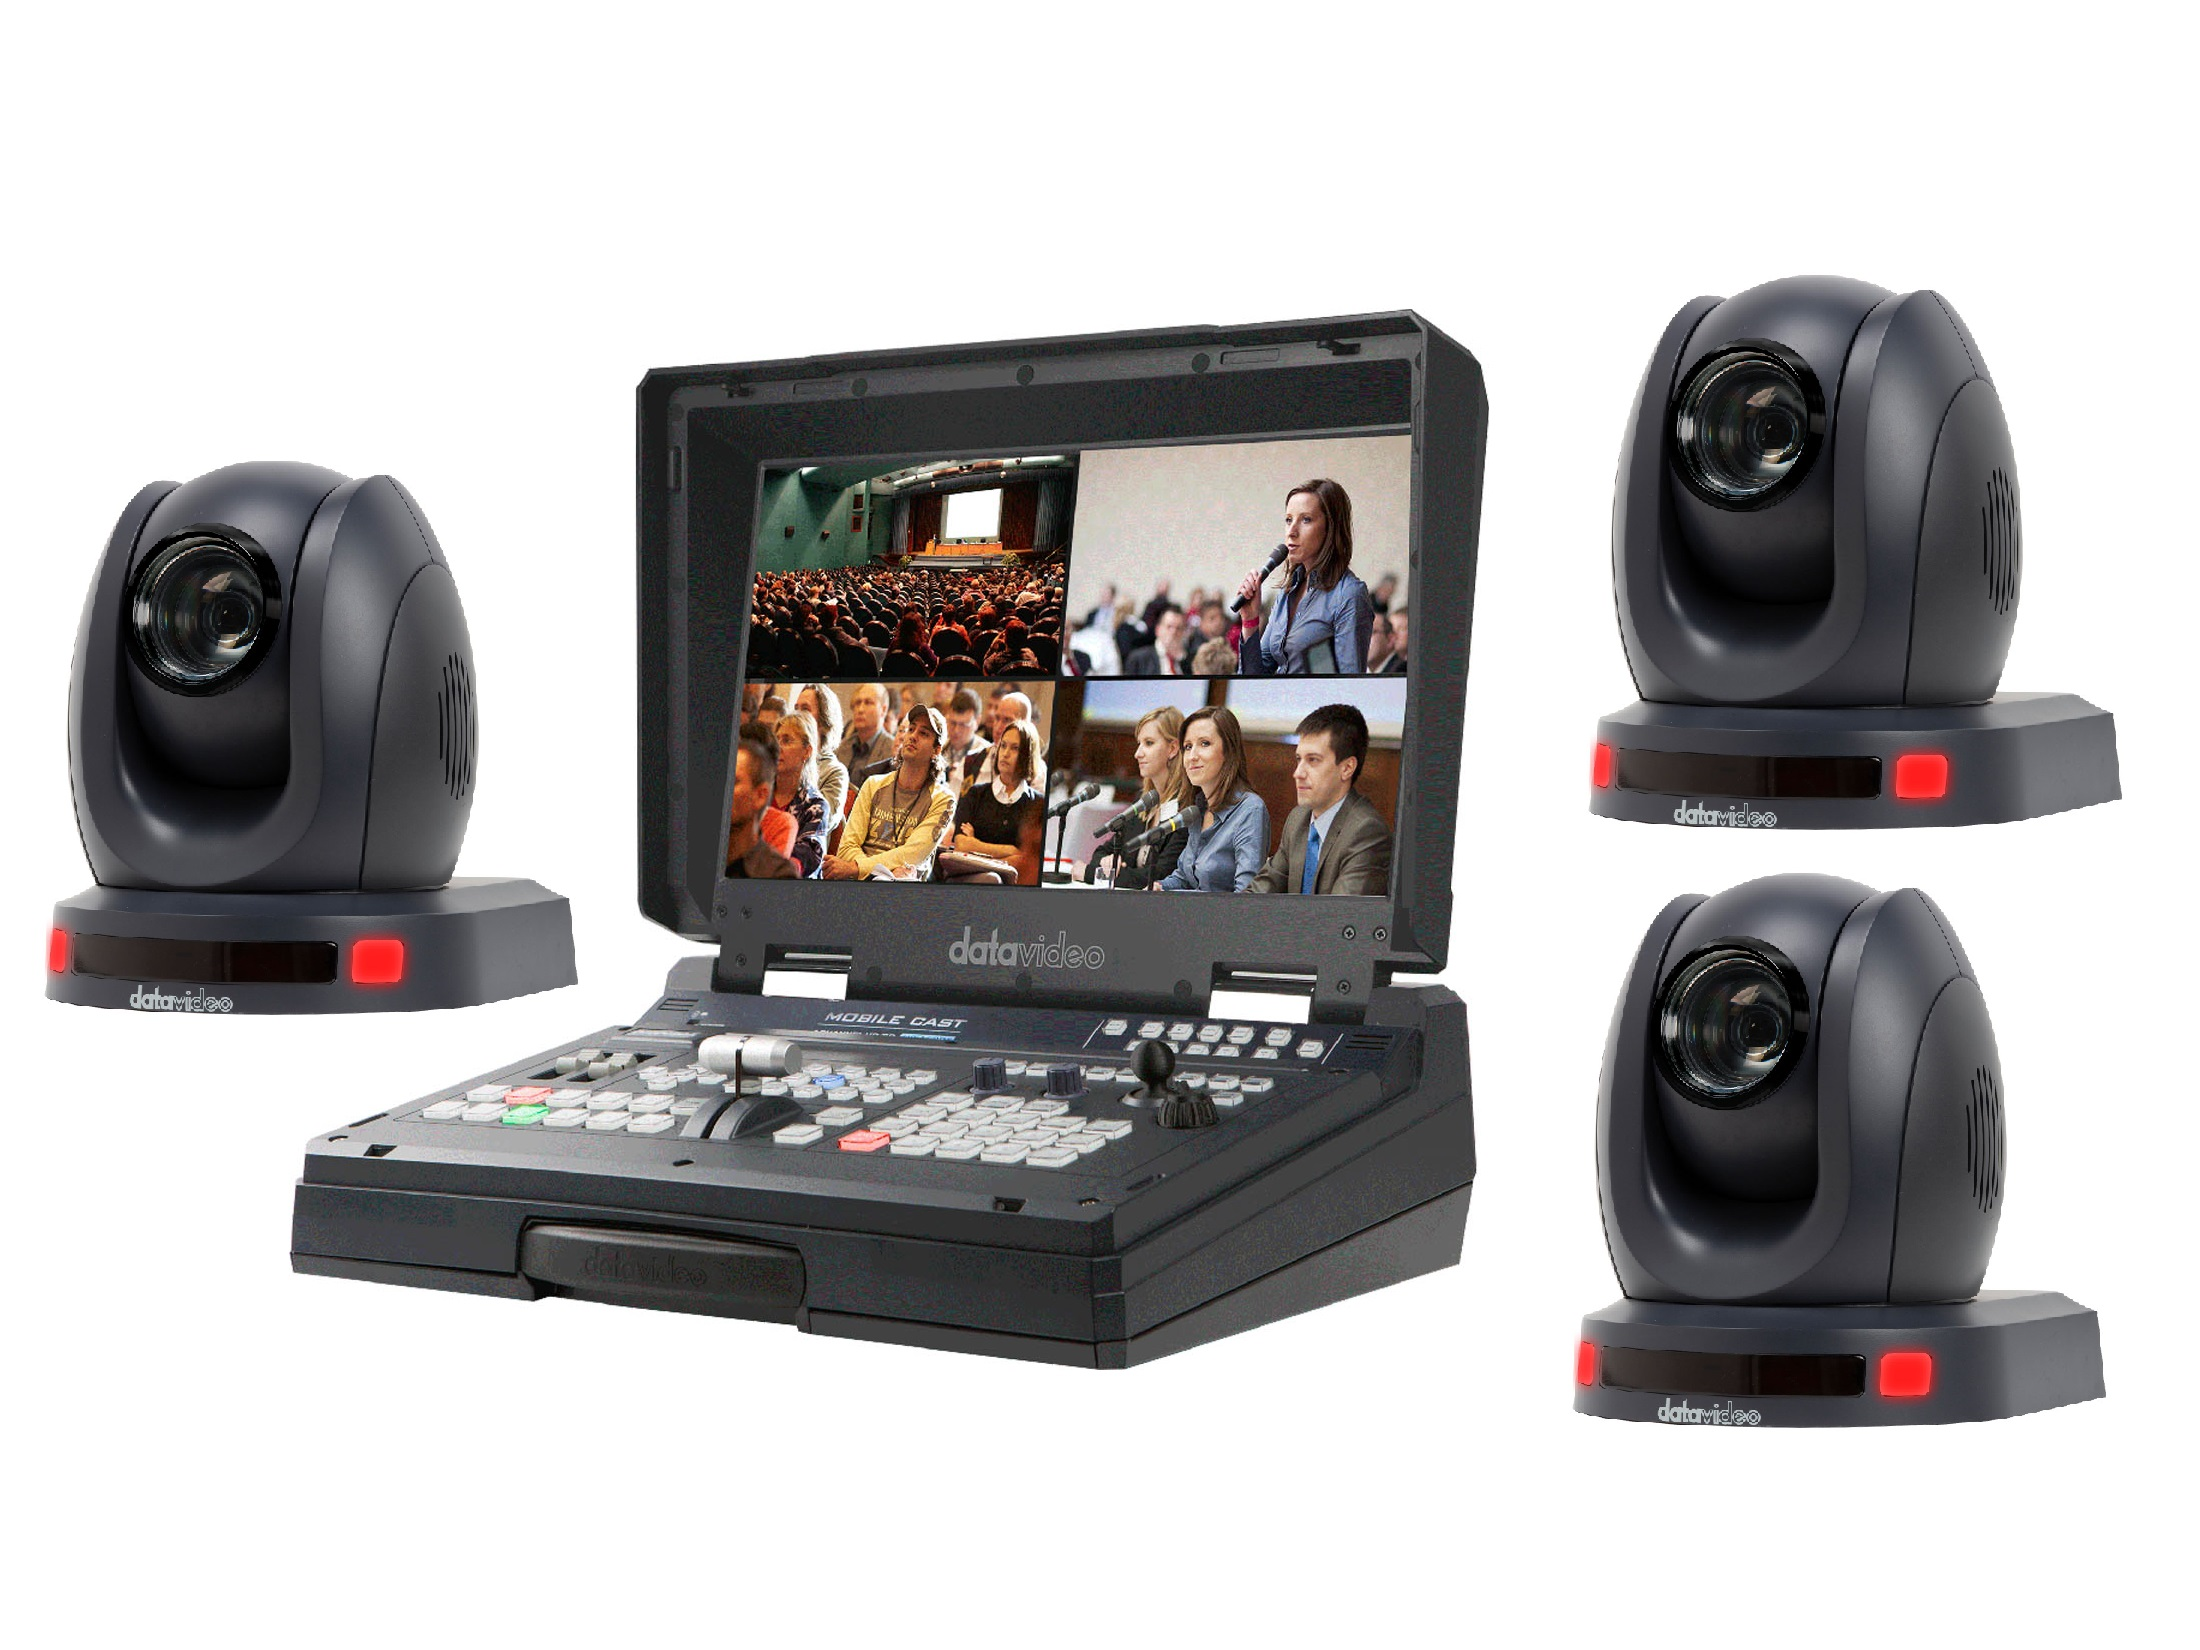 Datavideo HS-1500T3CAM One Operator Production/Presentation Solutions Kit with 3 Cameras